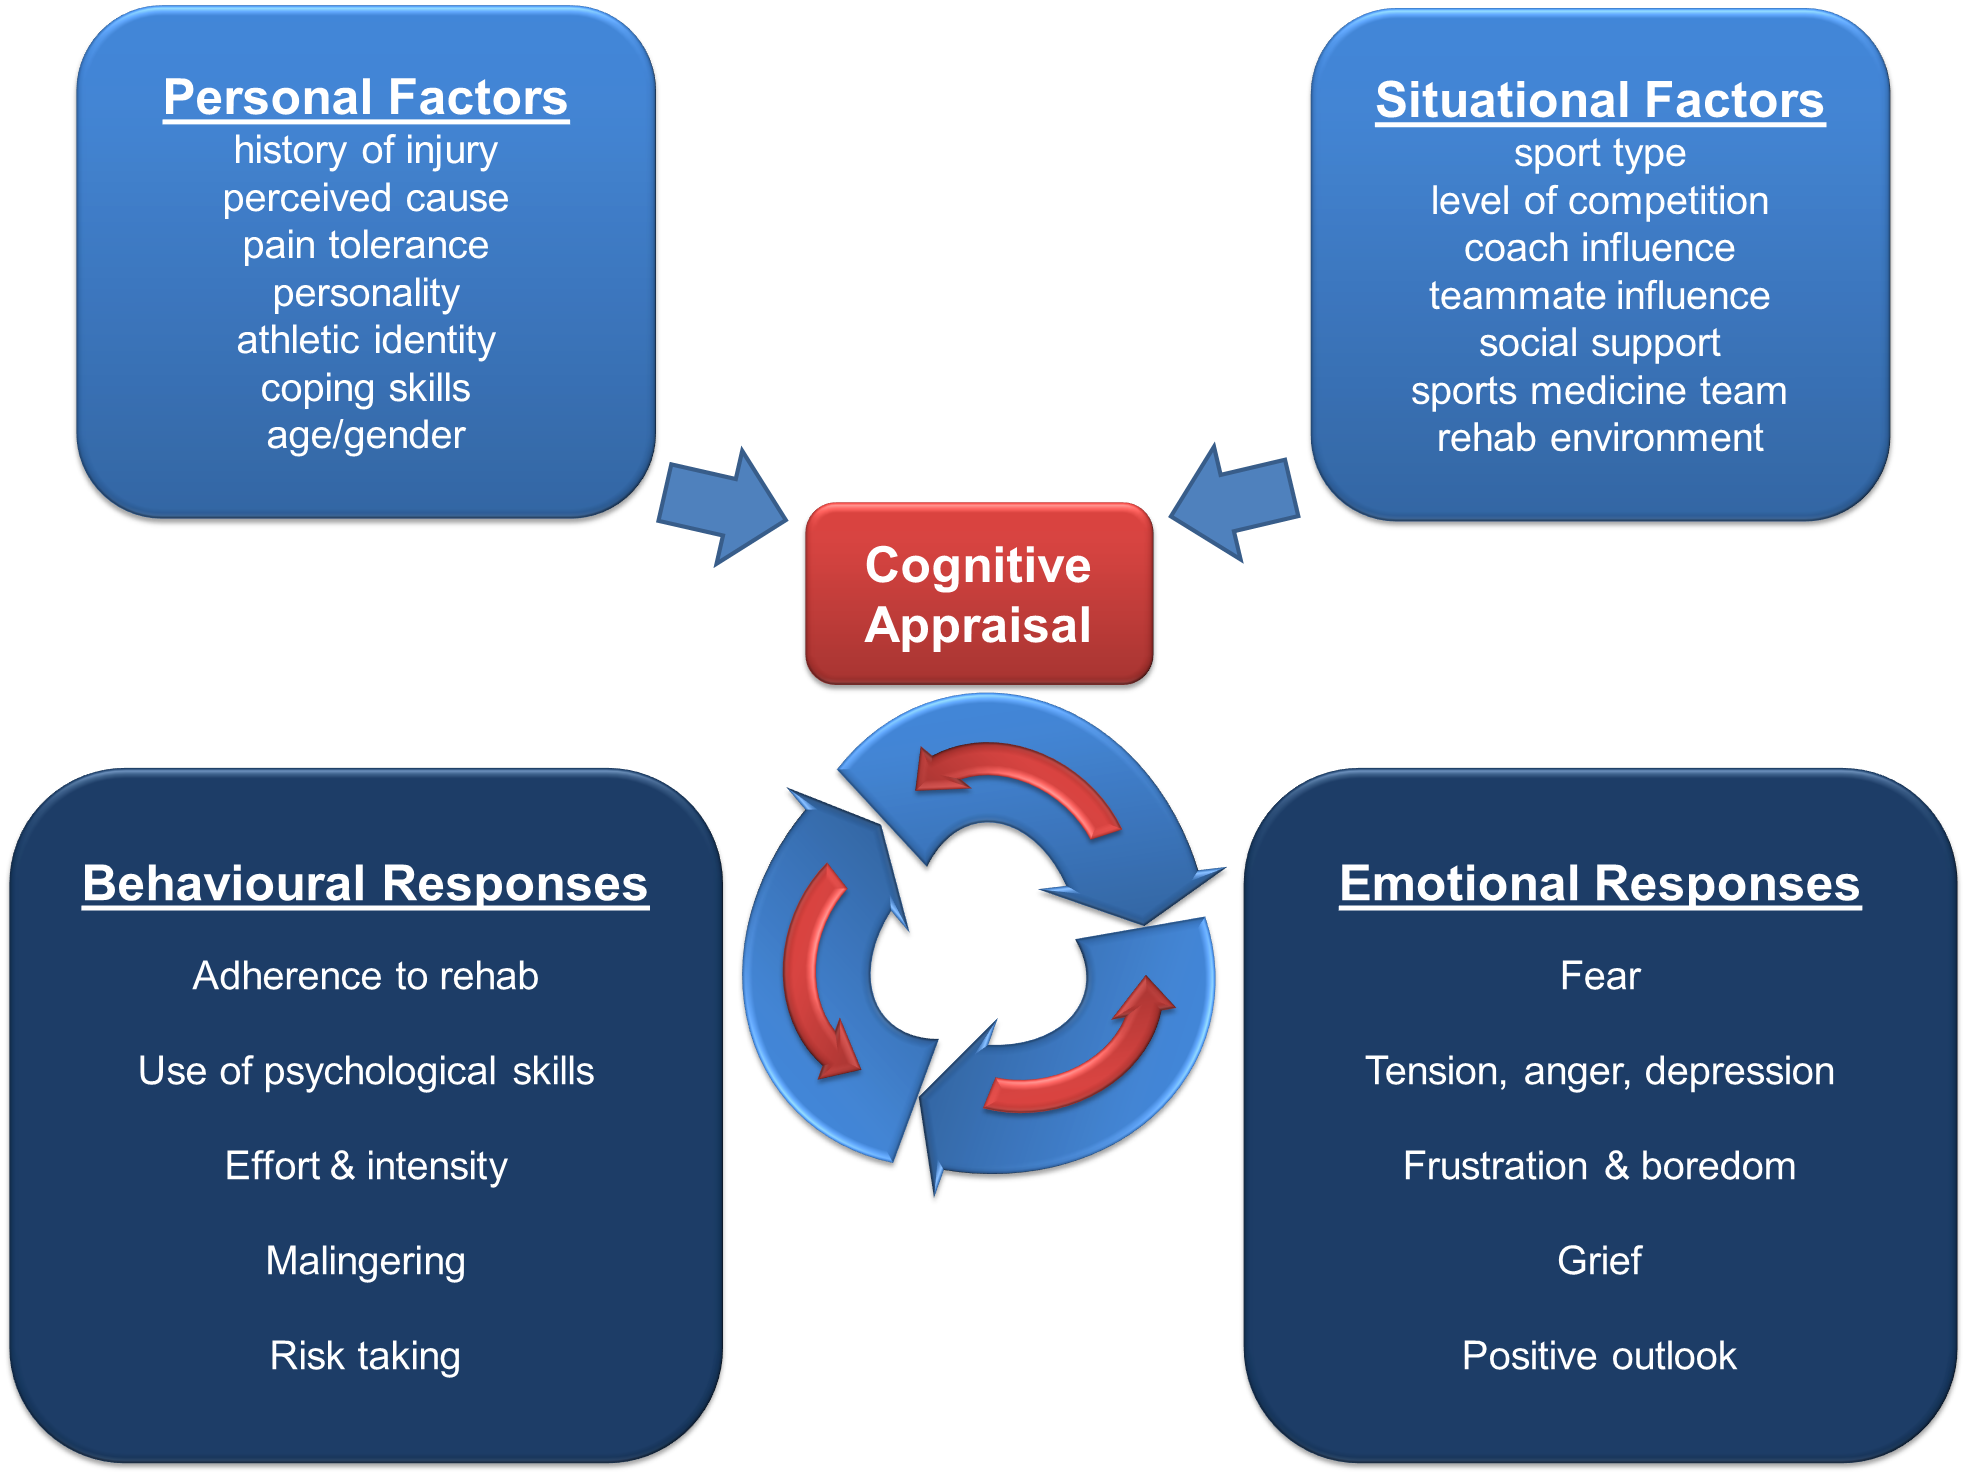 Abridged version of Wiese-bjornstal et al.'s Integrated model of  Psychological Responses to Sport Injury